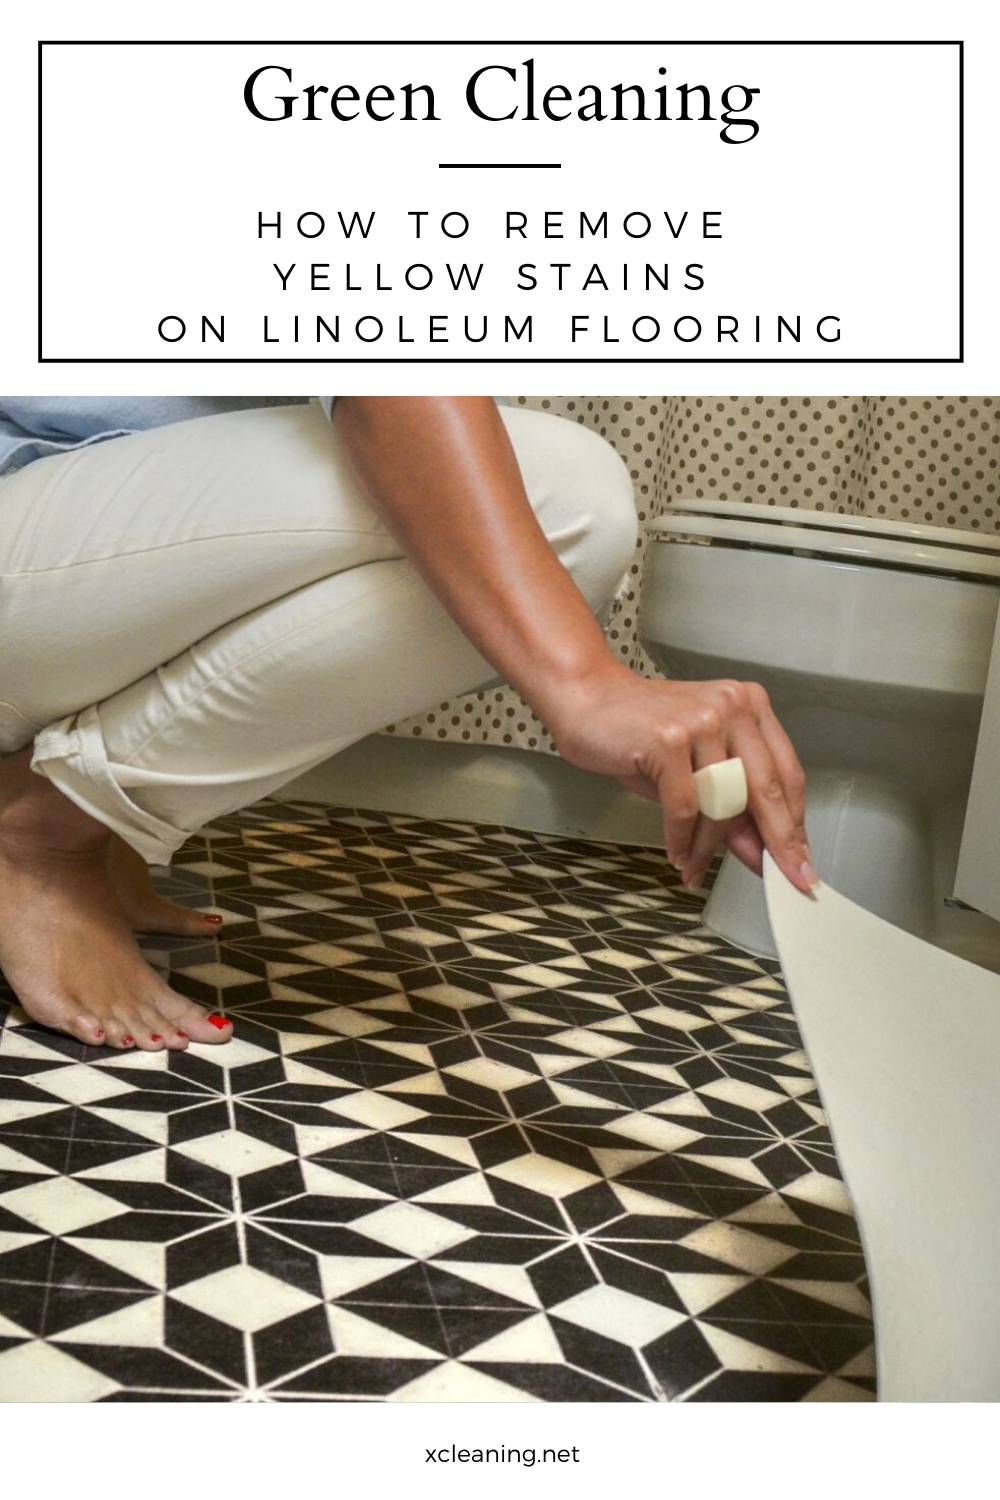 Green Cleaning How To Remove Yellow Stains On Linoleum Flooring In 2020